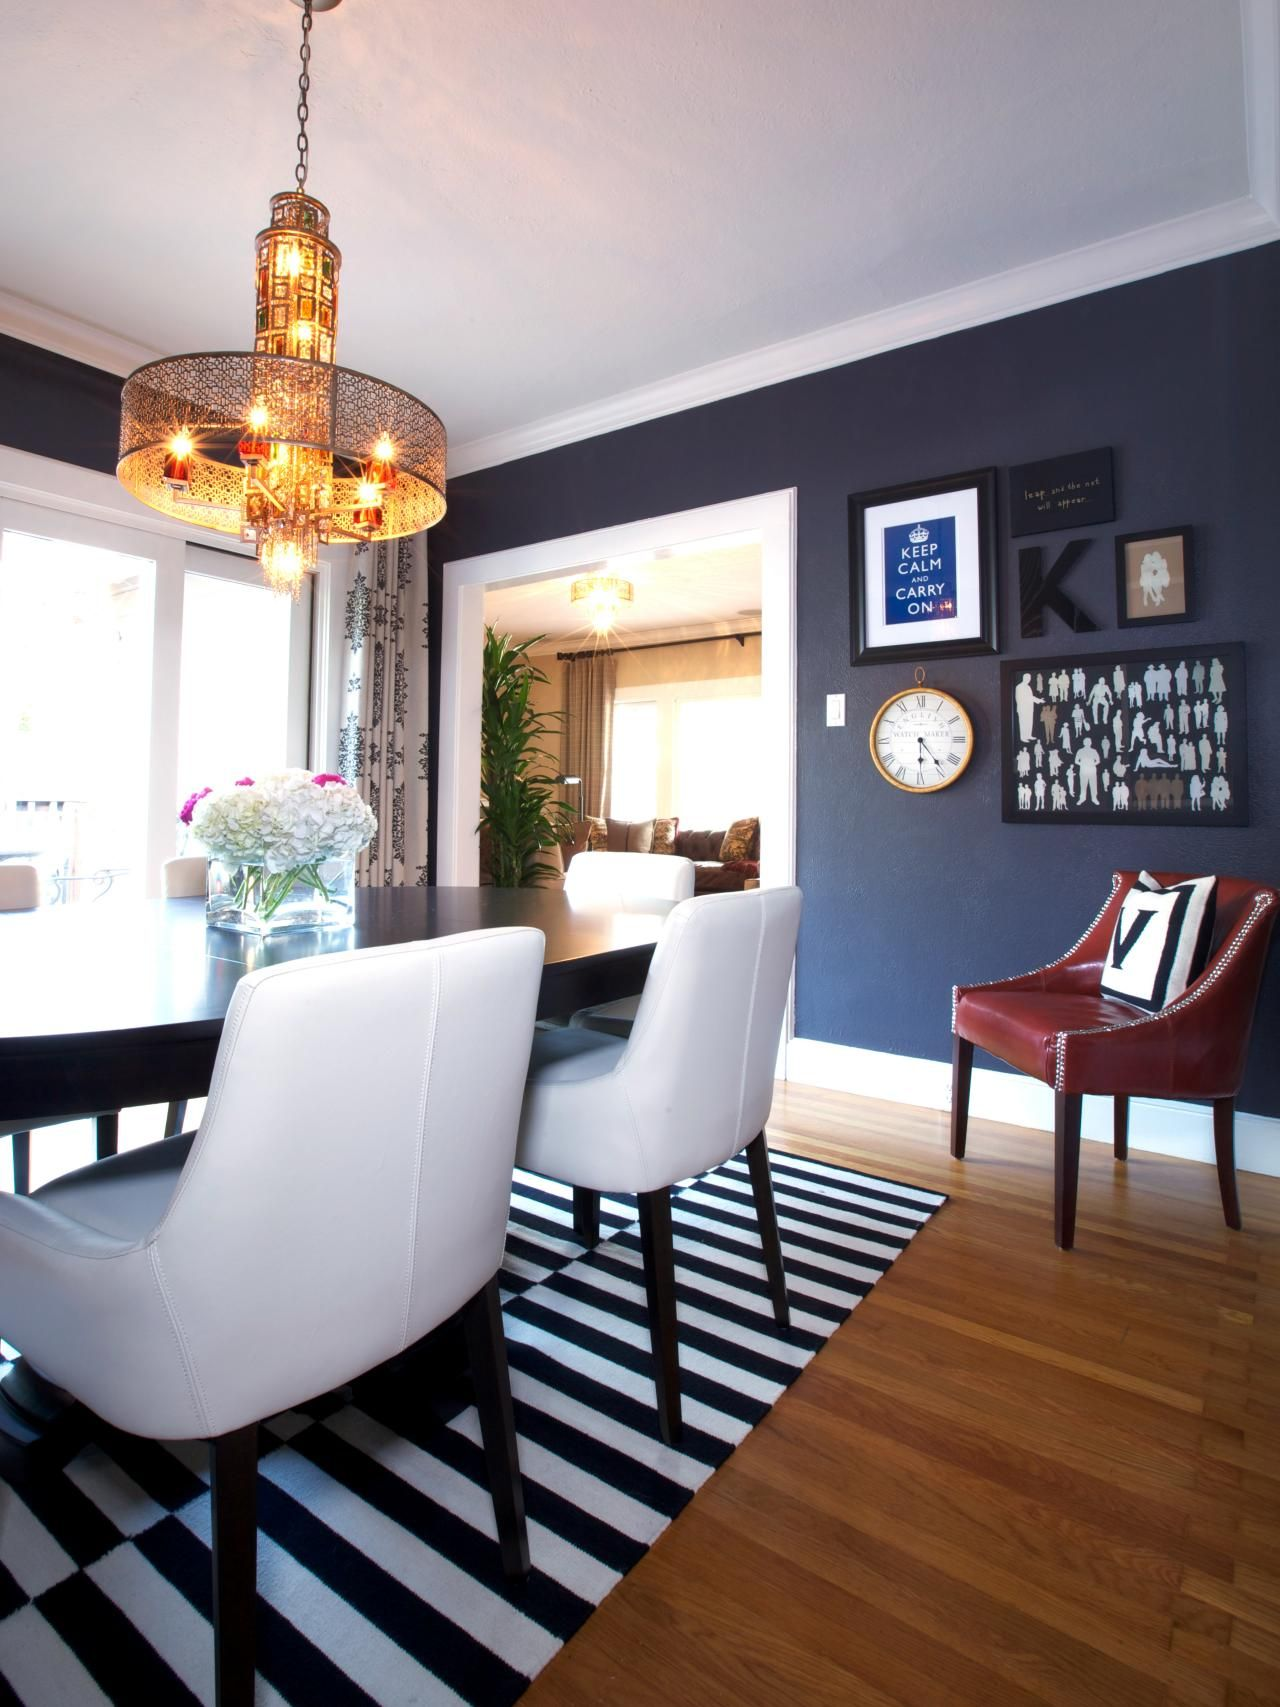 Monochrome Elegance 30 Black And White Striped Rugs Dining Room